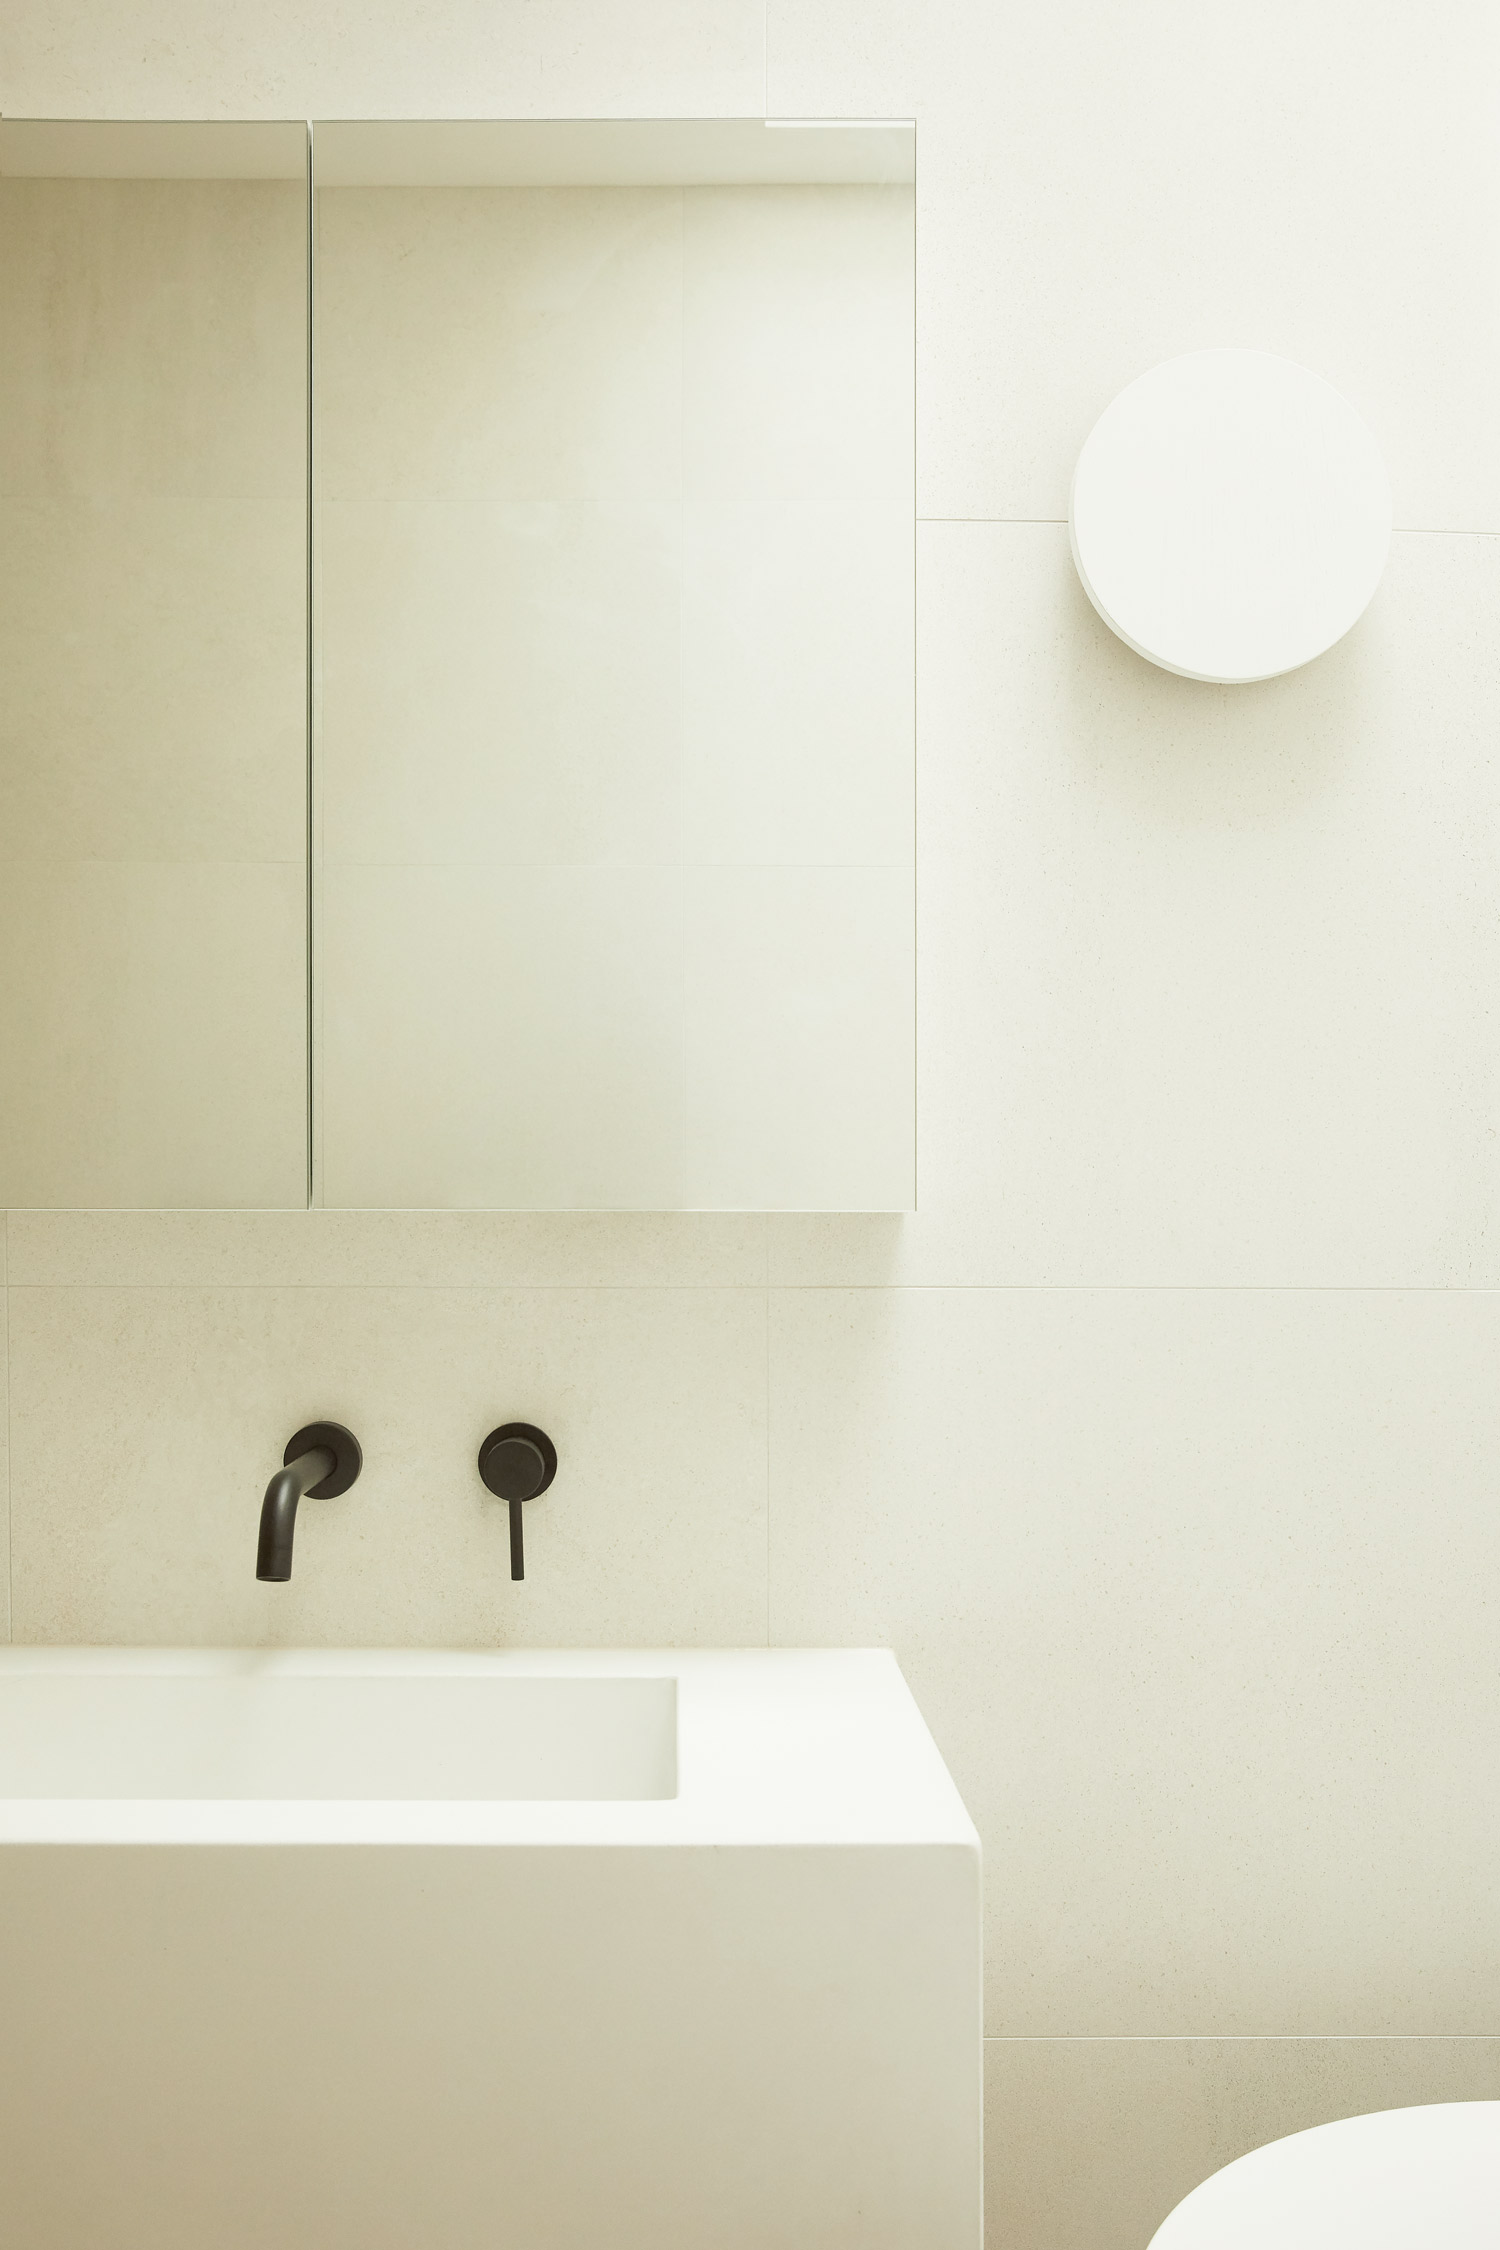 White Concrete sinks, black matte tapware, Warm minimalist bathroom in Sydney